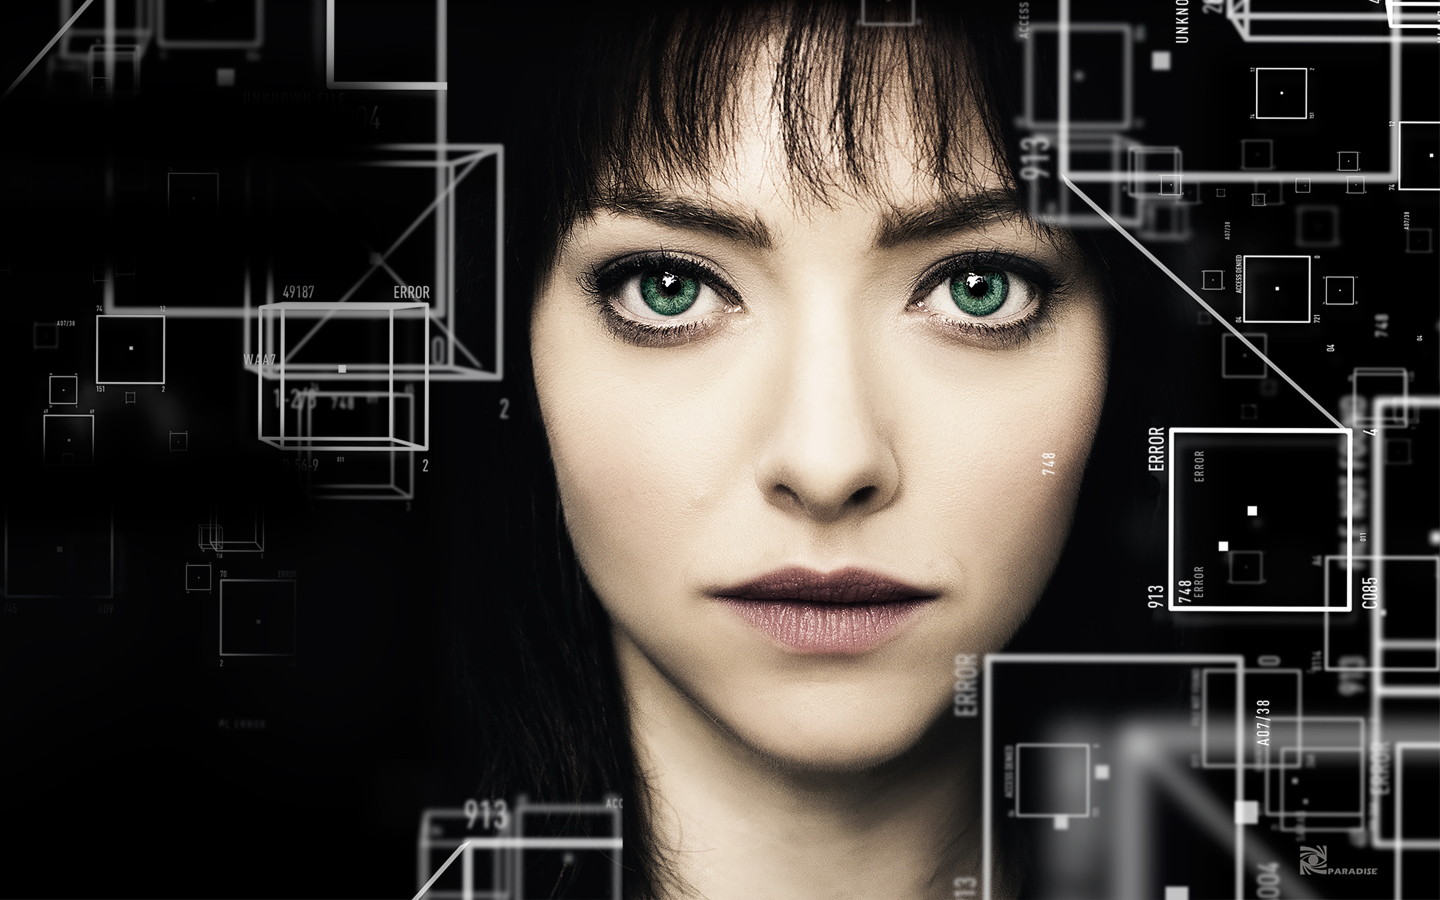 2018 Movie Posters: Anon Amanda Seyfried 2018 Movie Poster, HD 4K Wallpaper